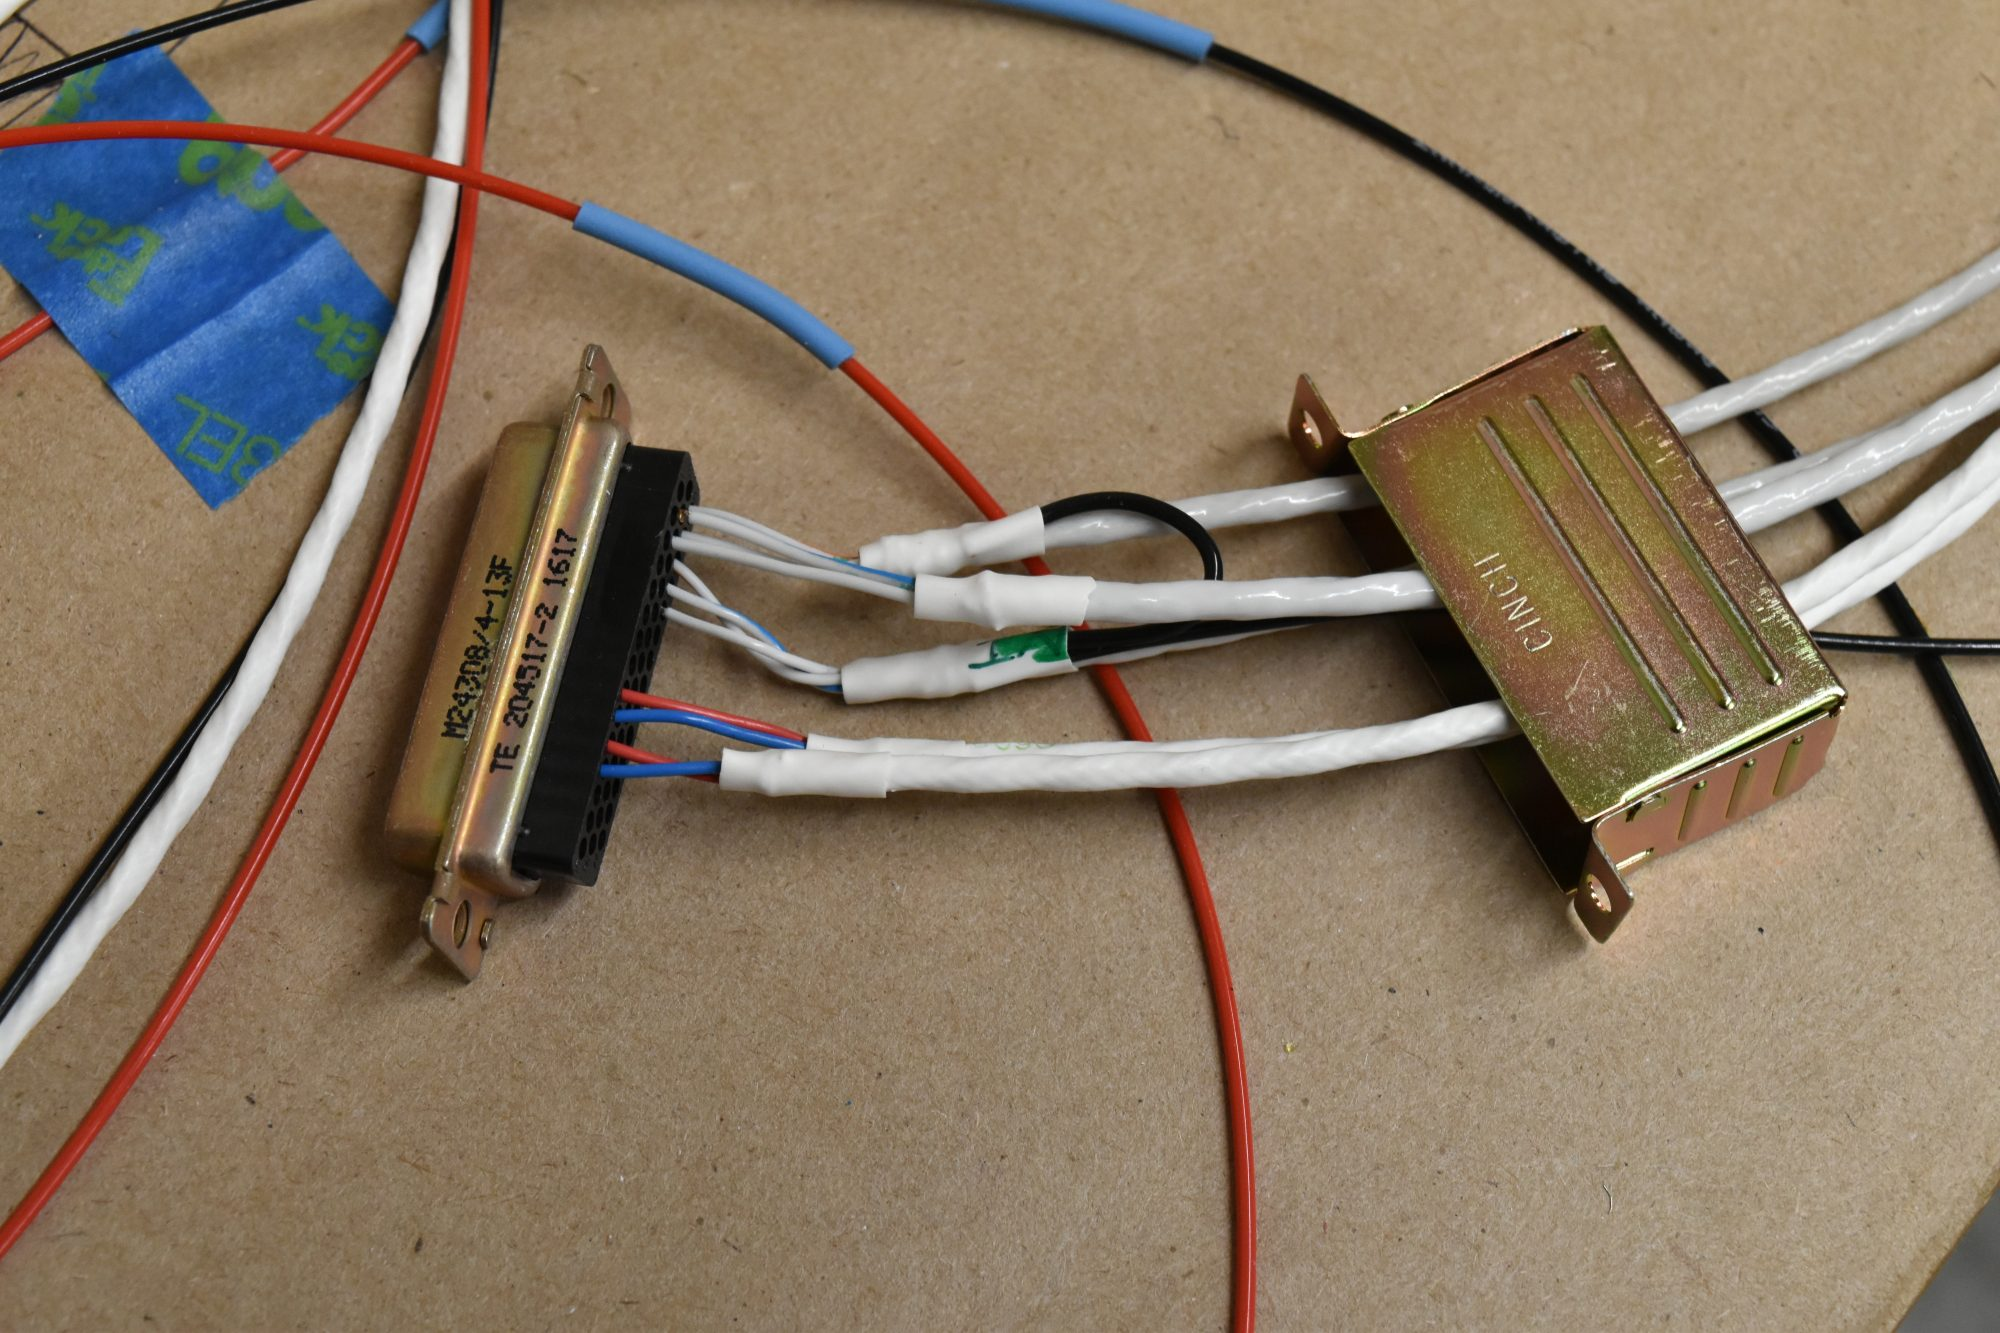 Dual Cl  Cable Ties besides Braided Sleeving also Egt Probe Ms further Fuel F furthermore Lt. on wire harness strain relief